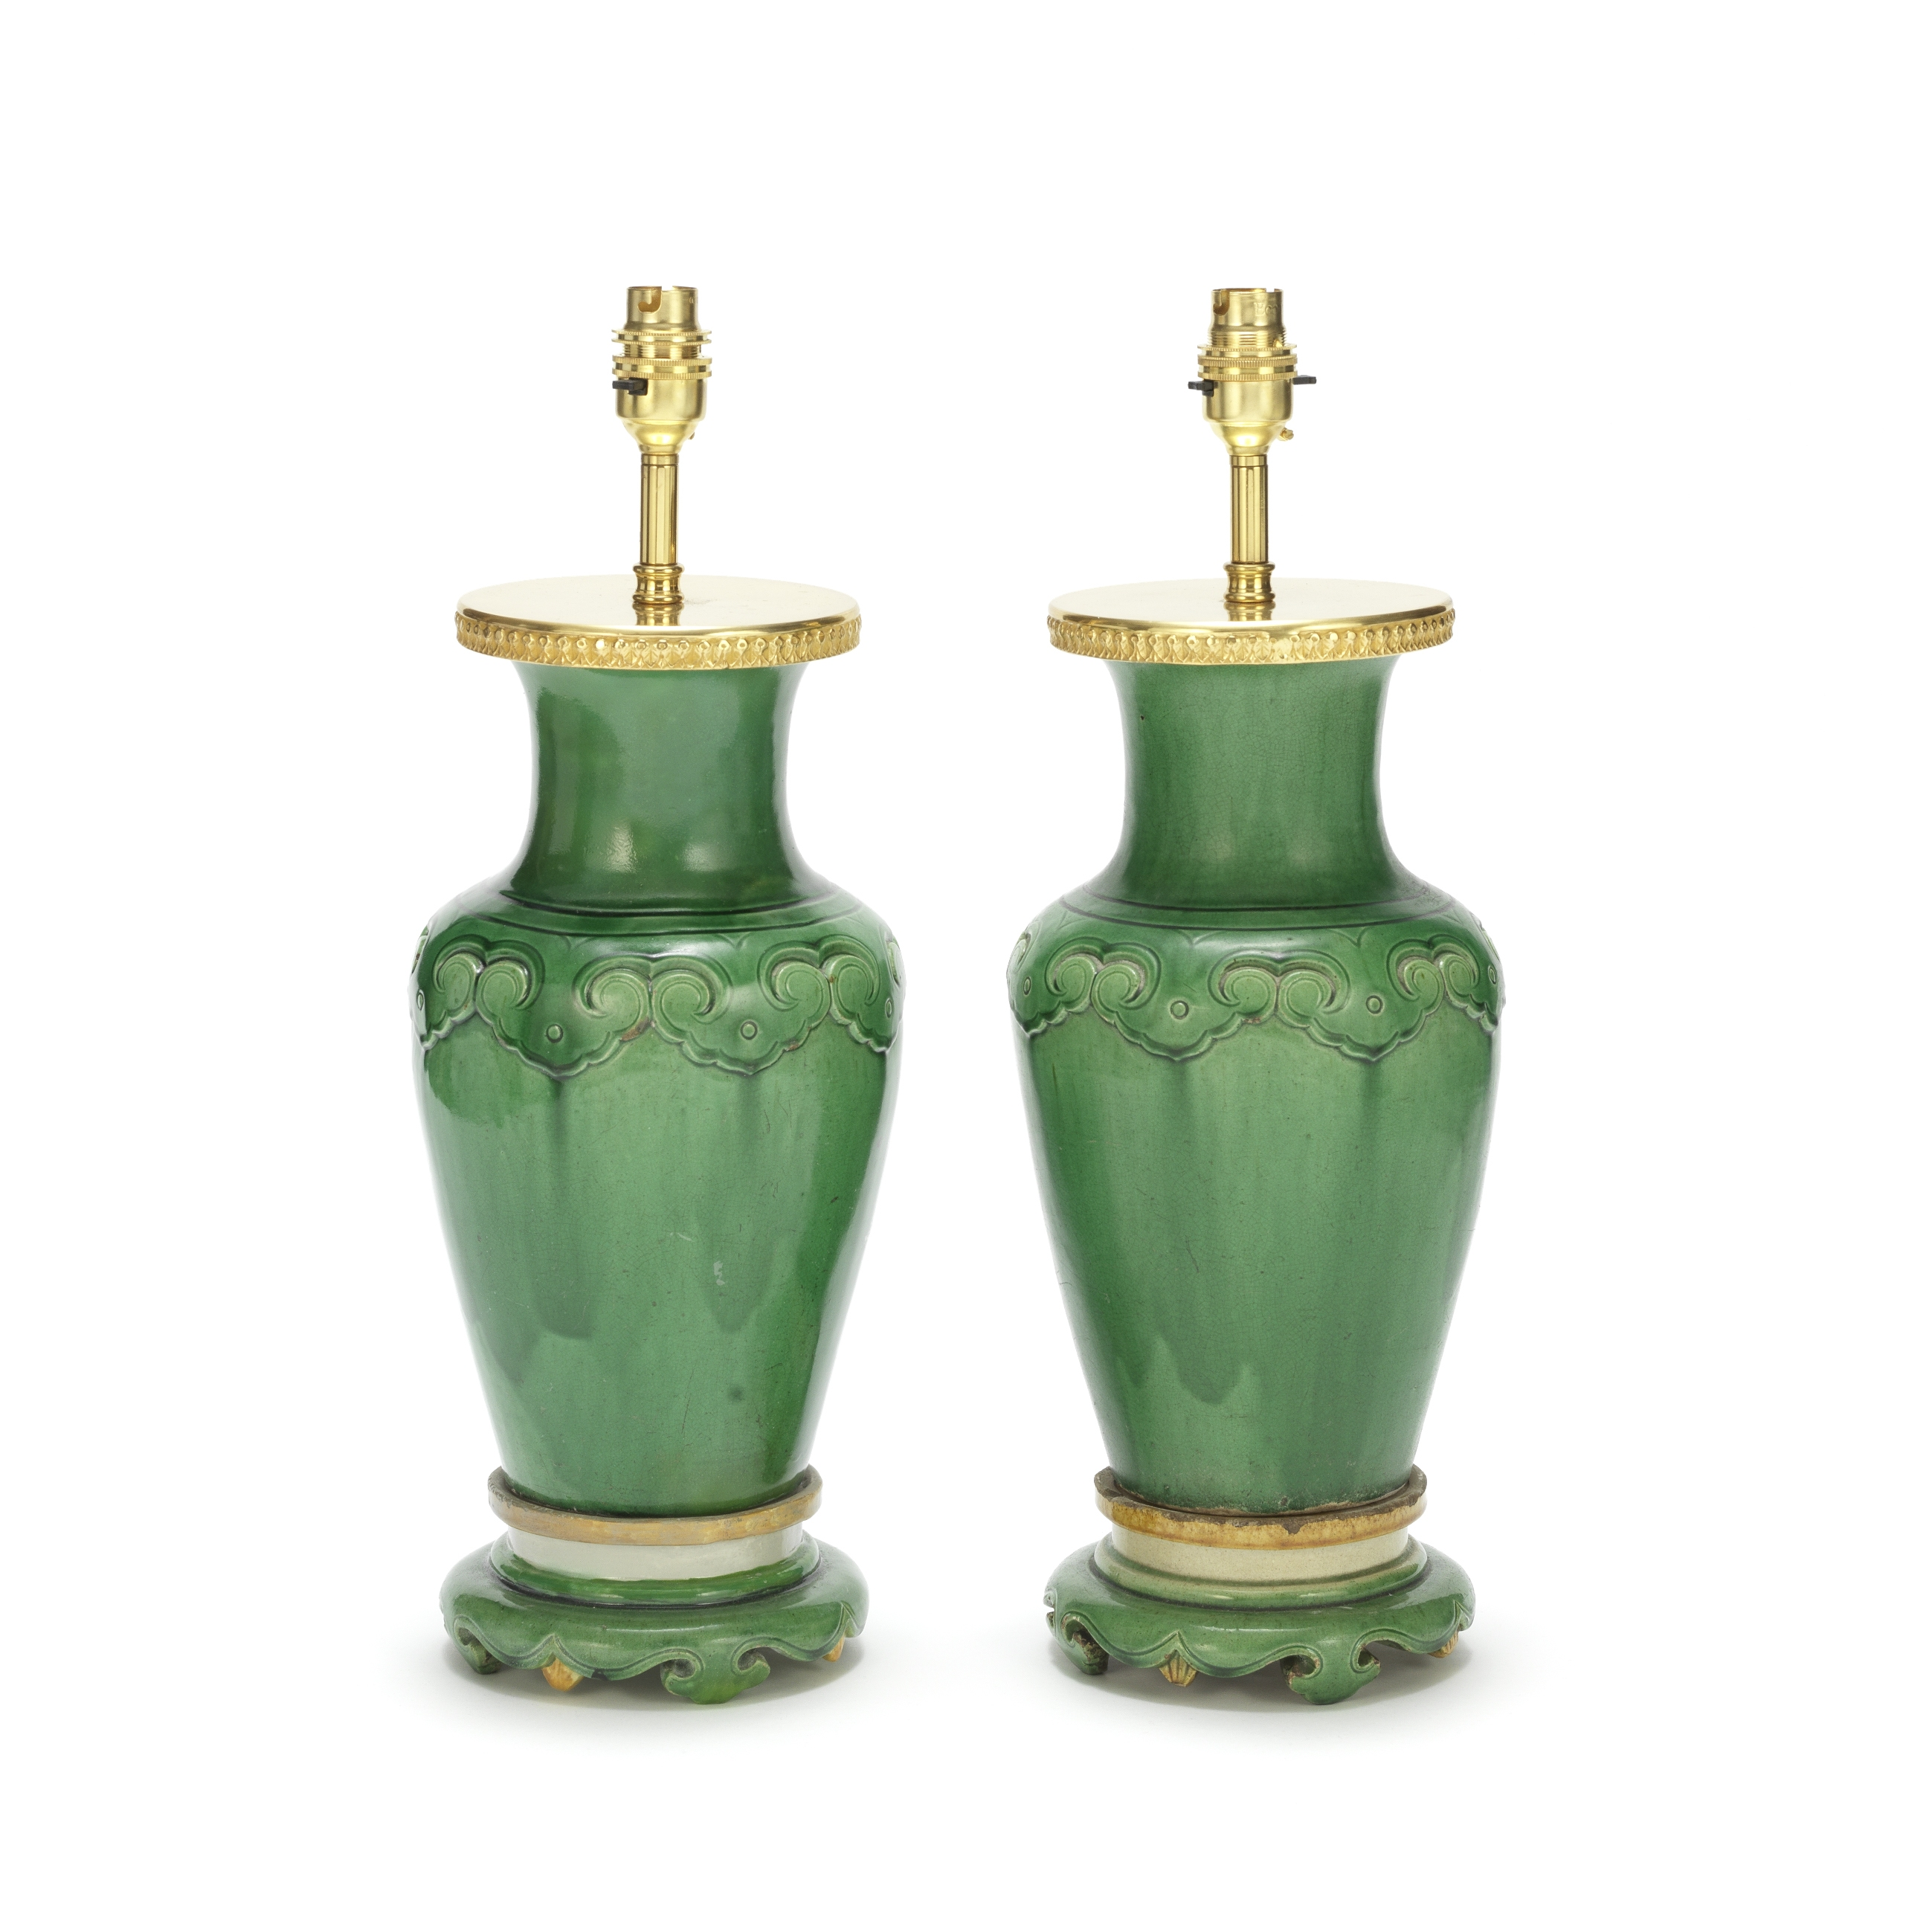 A pair of late 19th / early 20th century Chinese green glazed pottery baluster vase lamp bases (2)